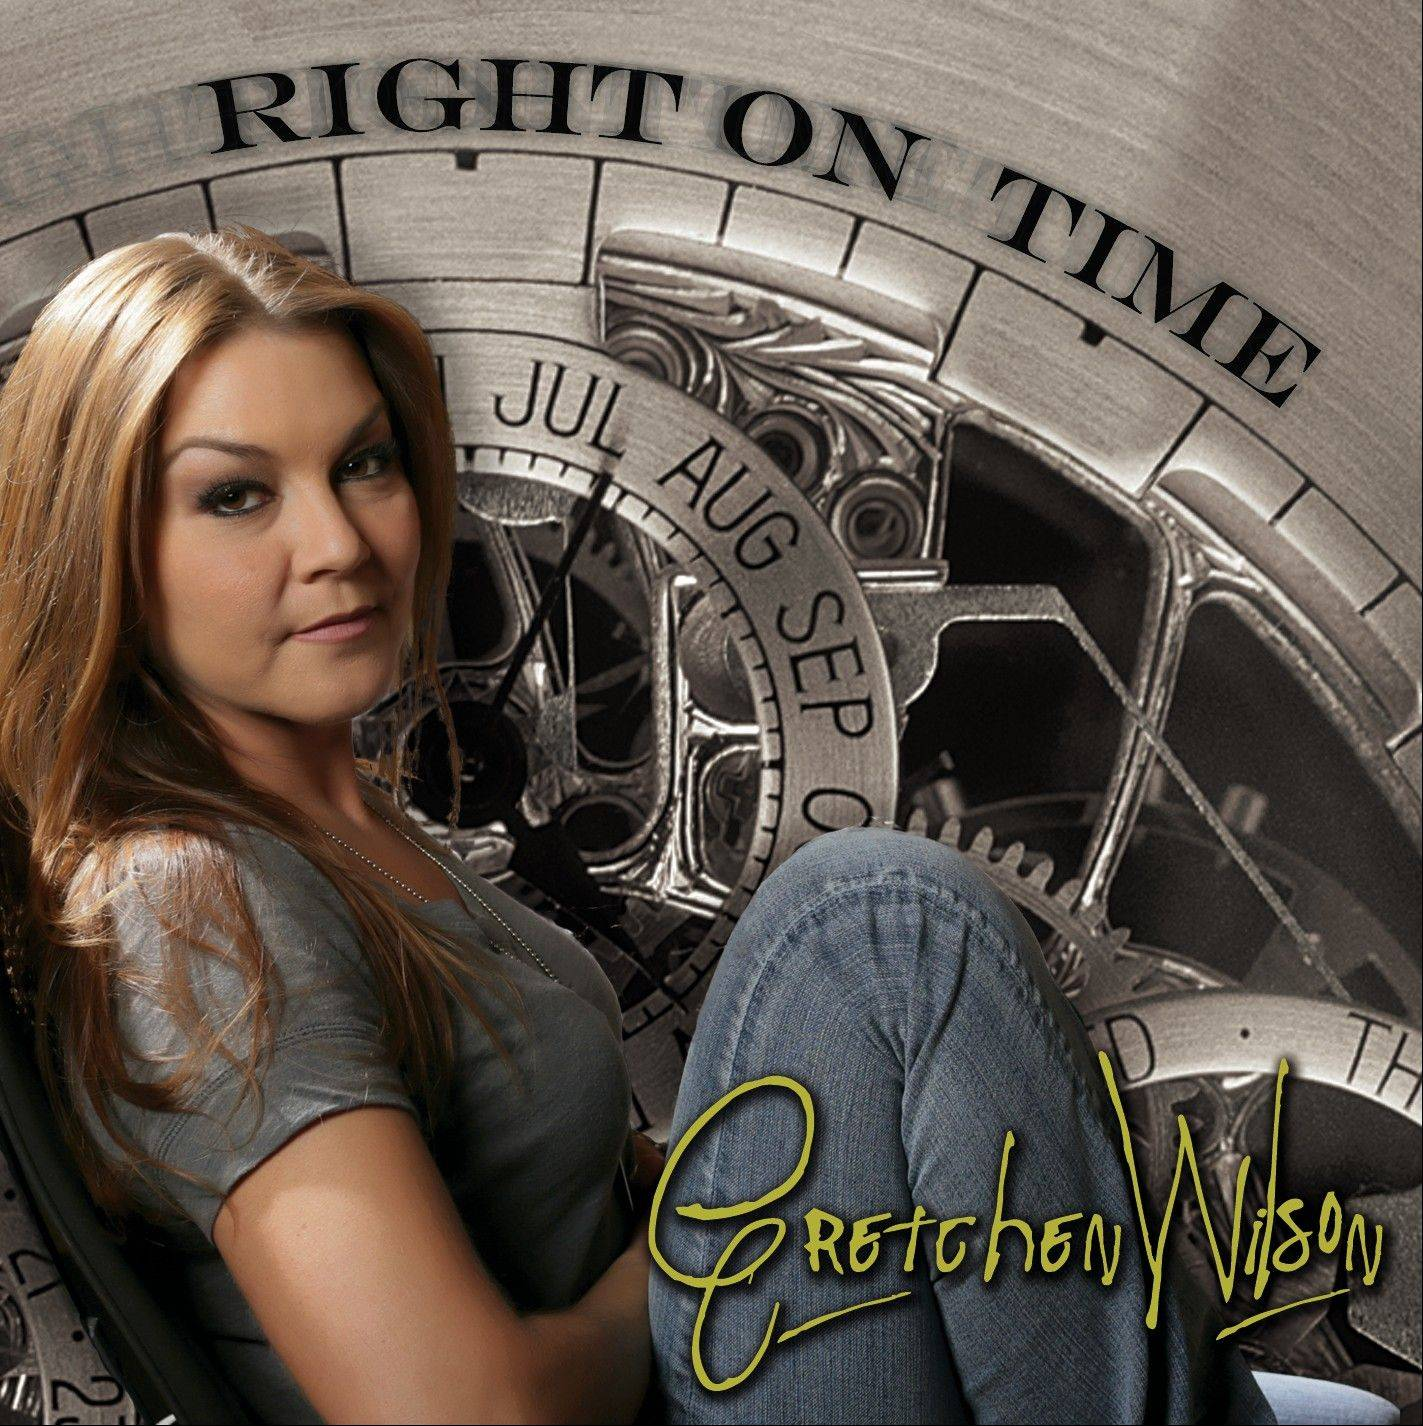 �Right on Time� by Gretchen Wilson